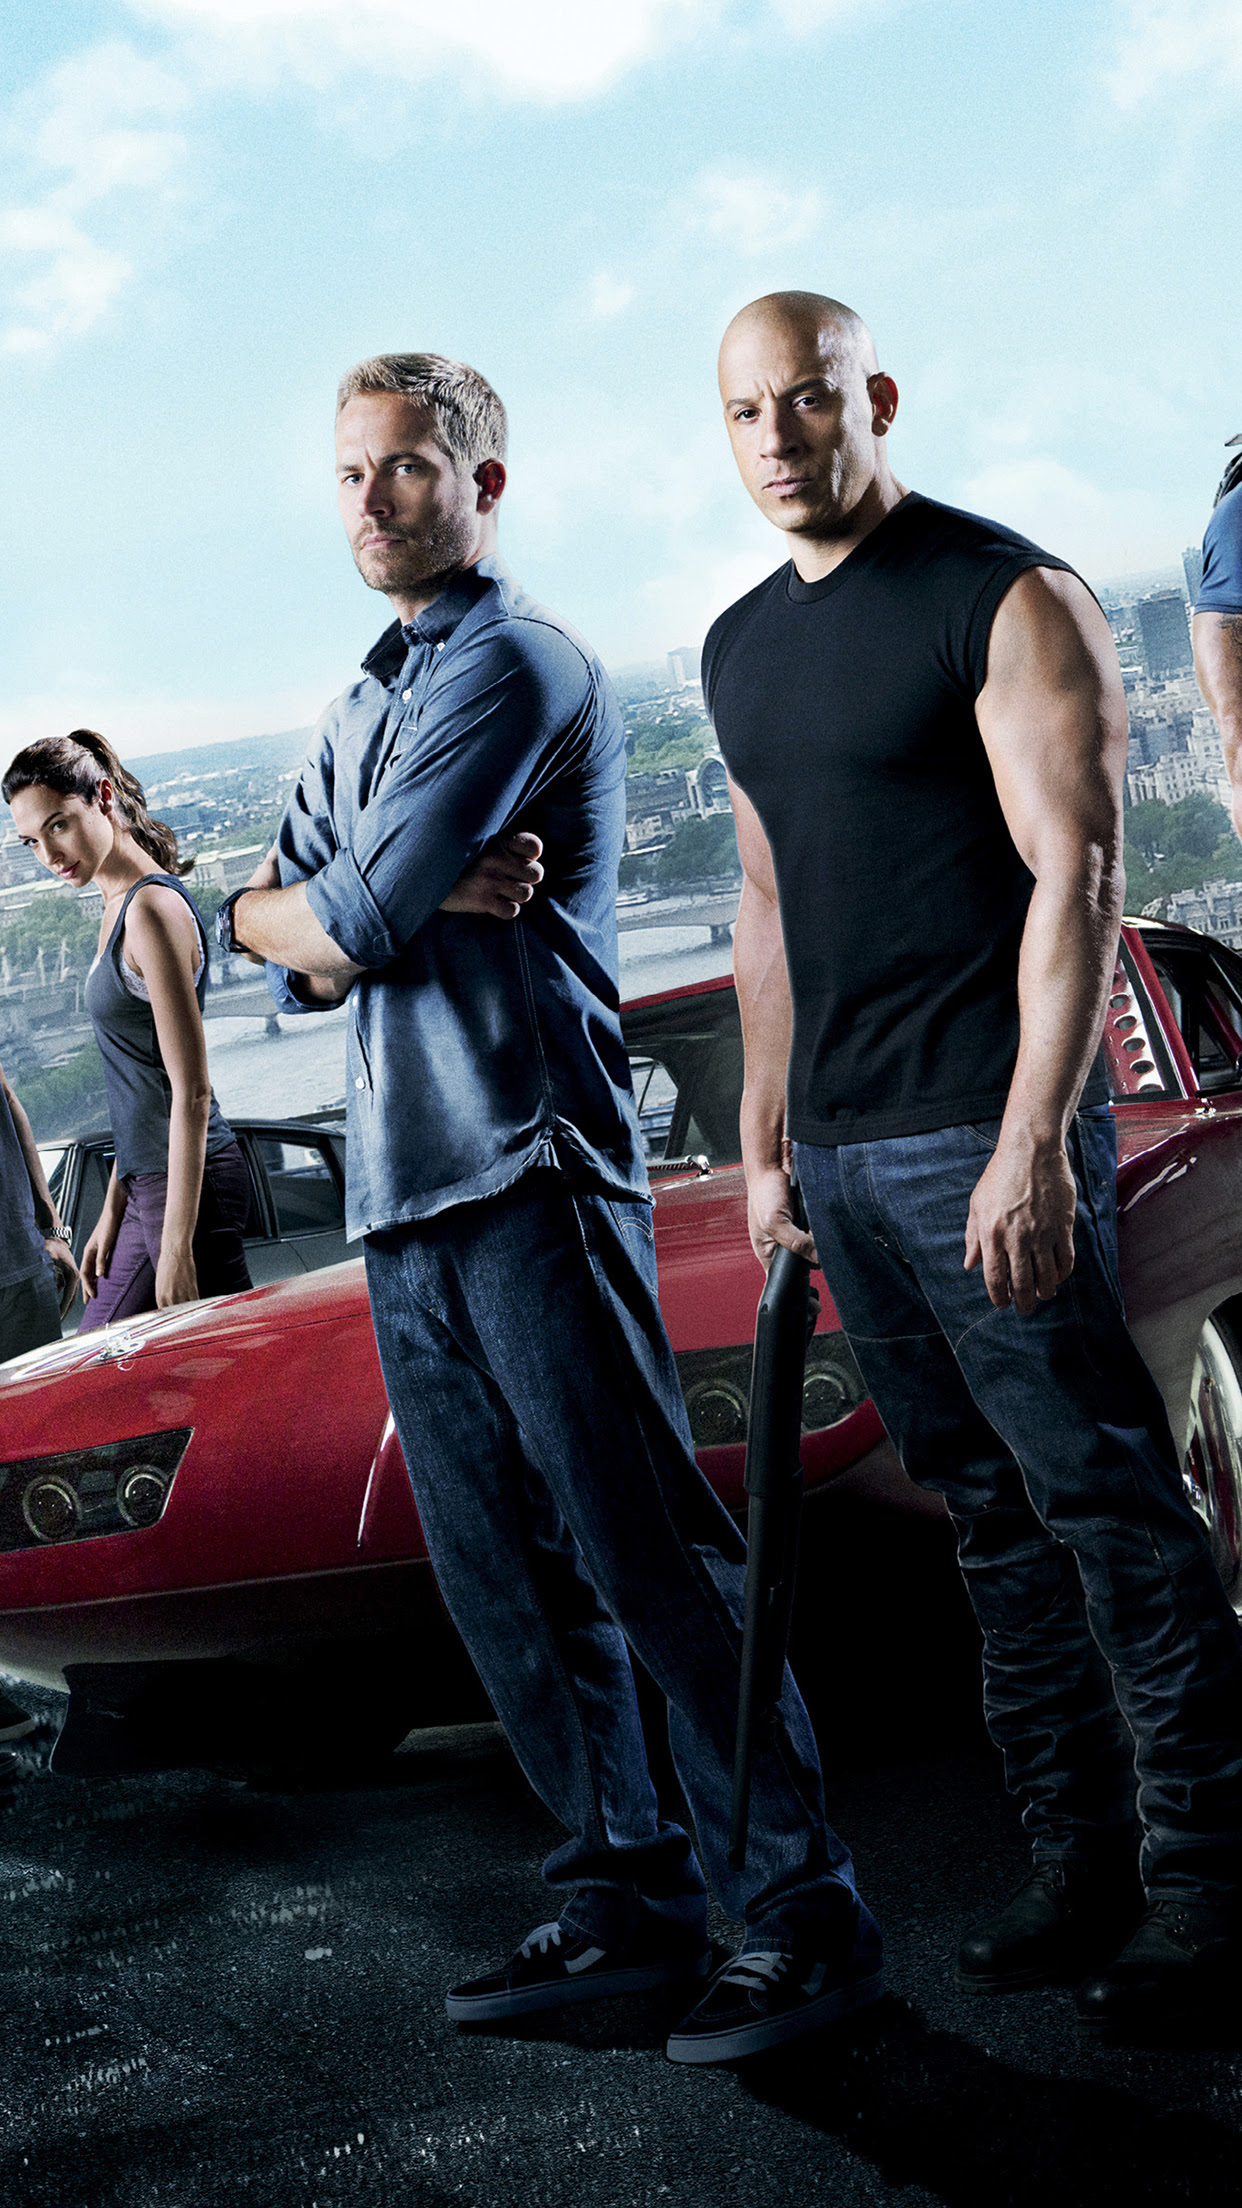 Fast Furious 6 Wallpaper For Iphone 11 Pro Max X 8 7 6